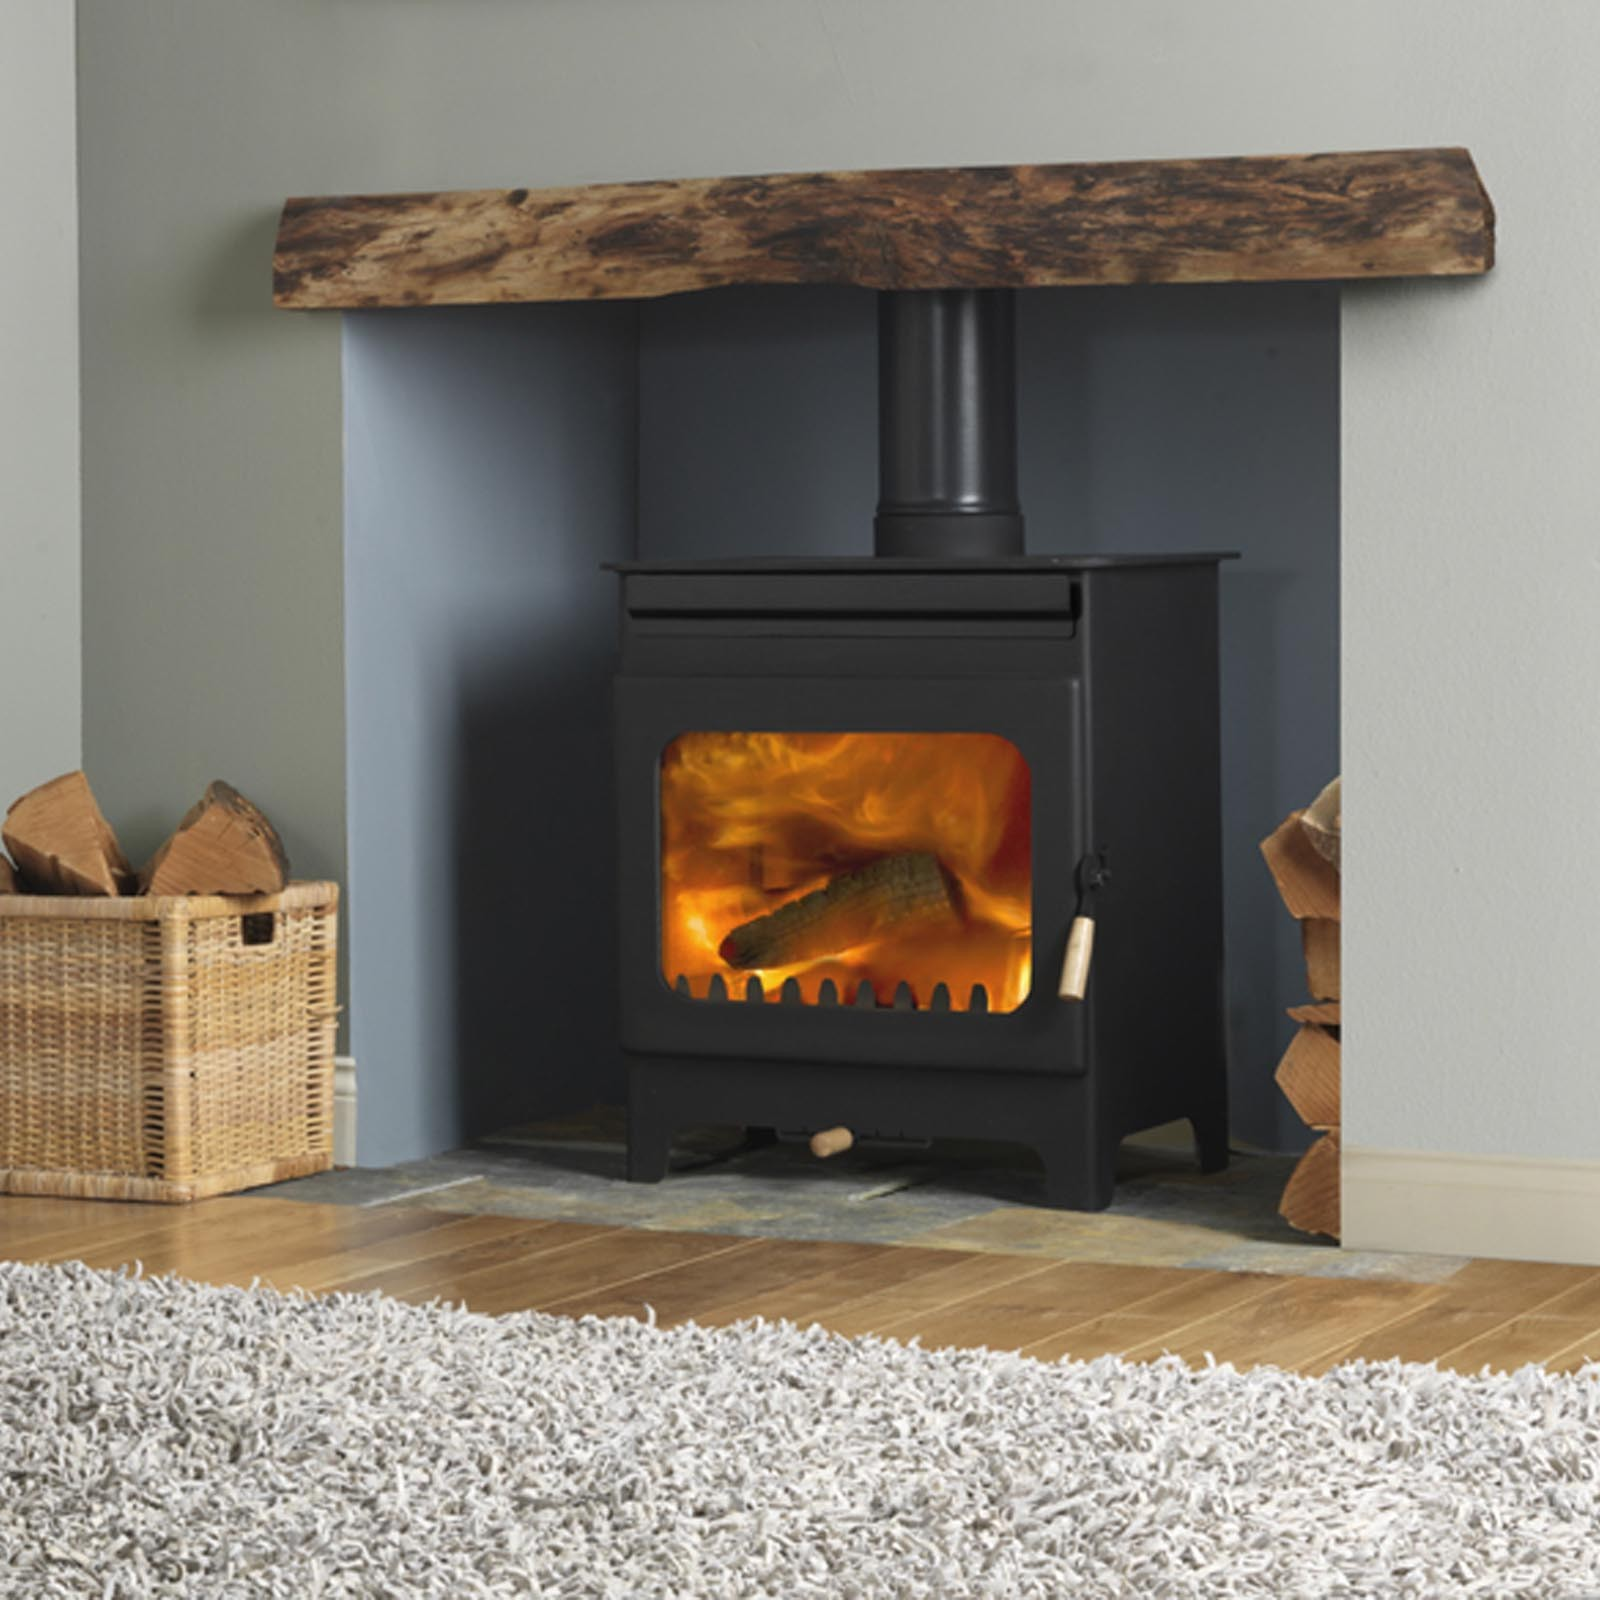 New Product Burley Fireball Brampton Wood Burning Stove